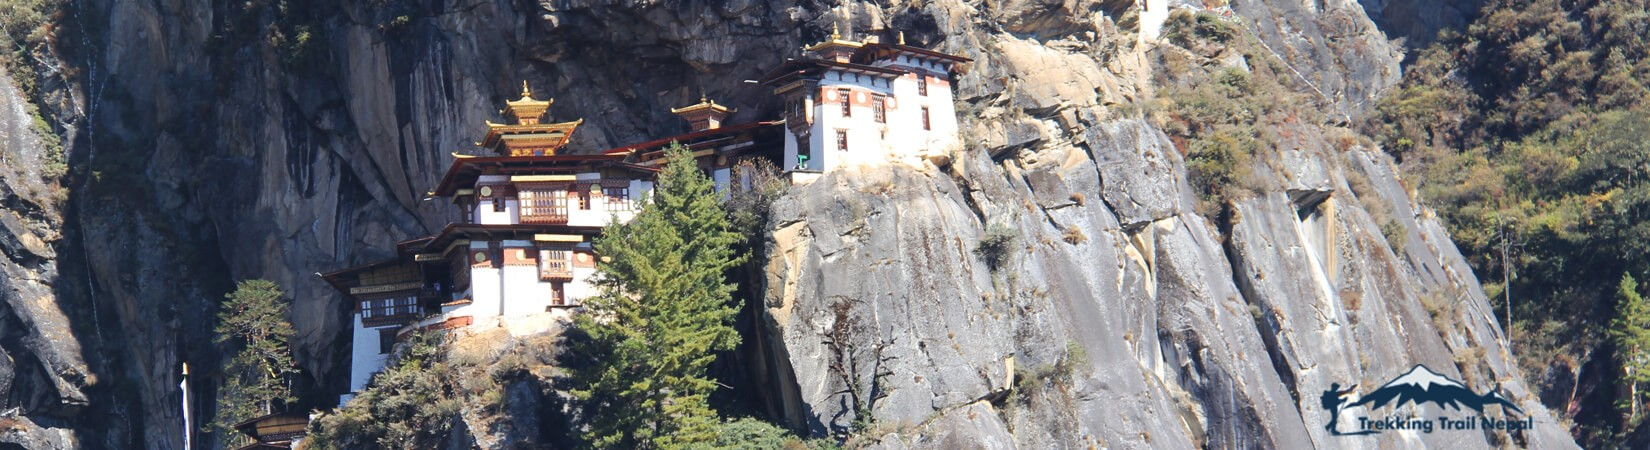 Tiger Nest: Place to Visit in Bhutan